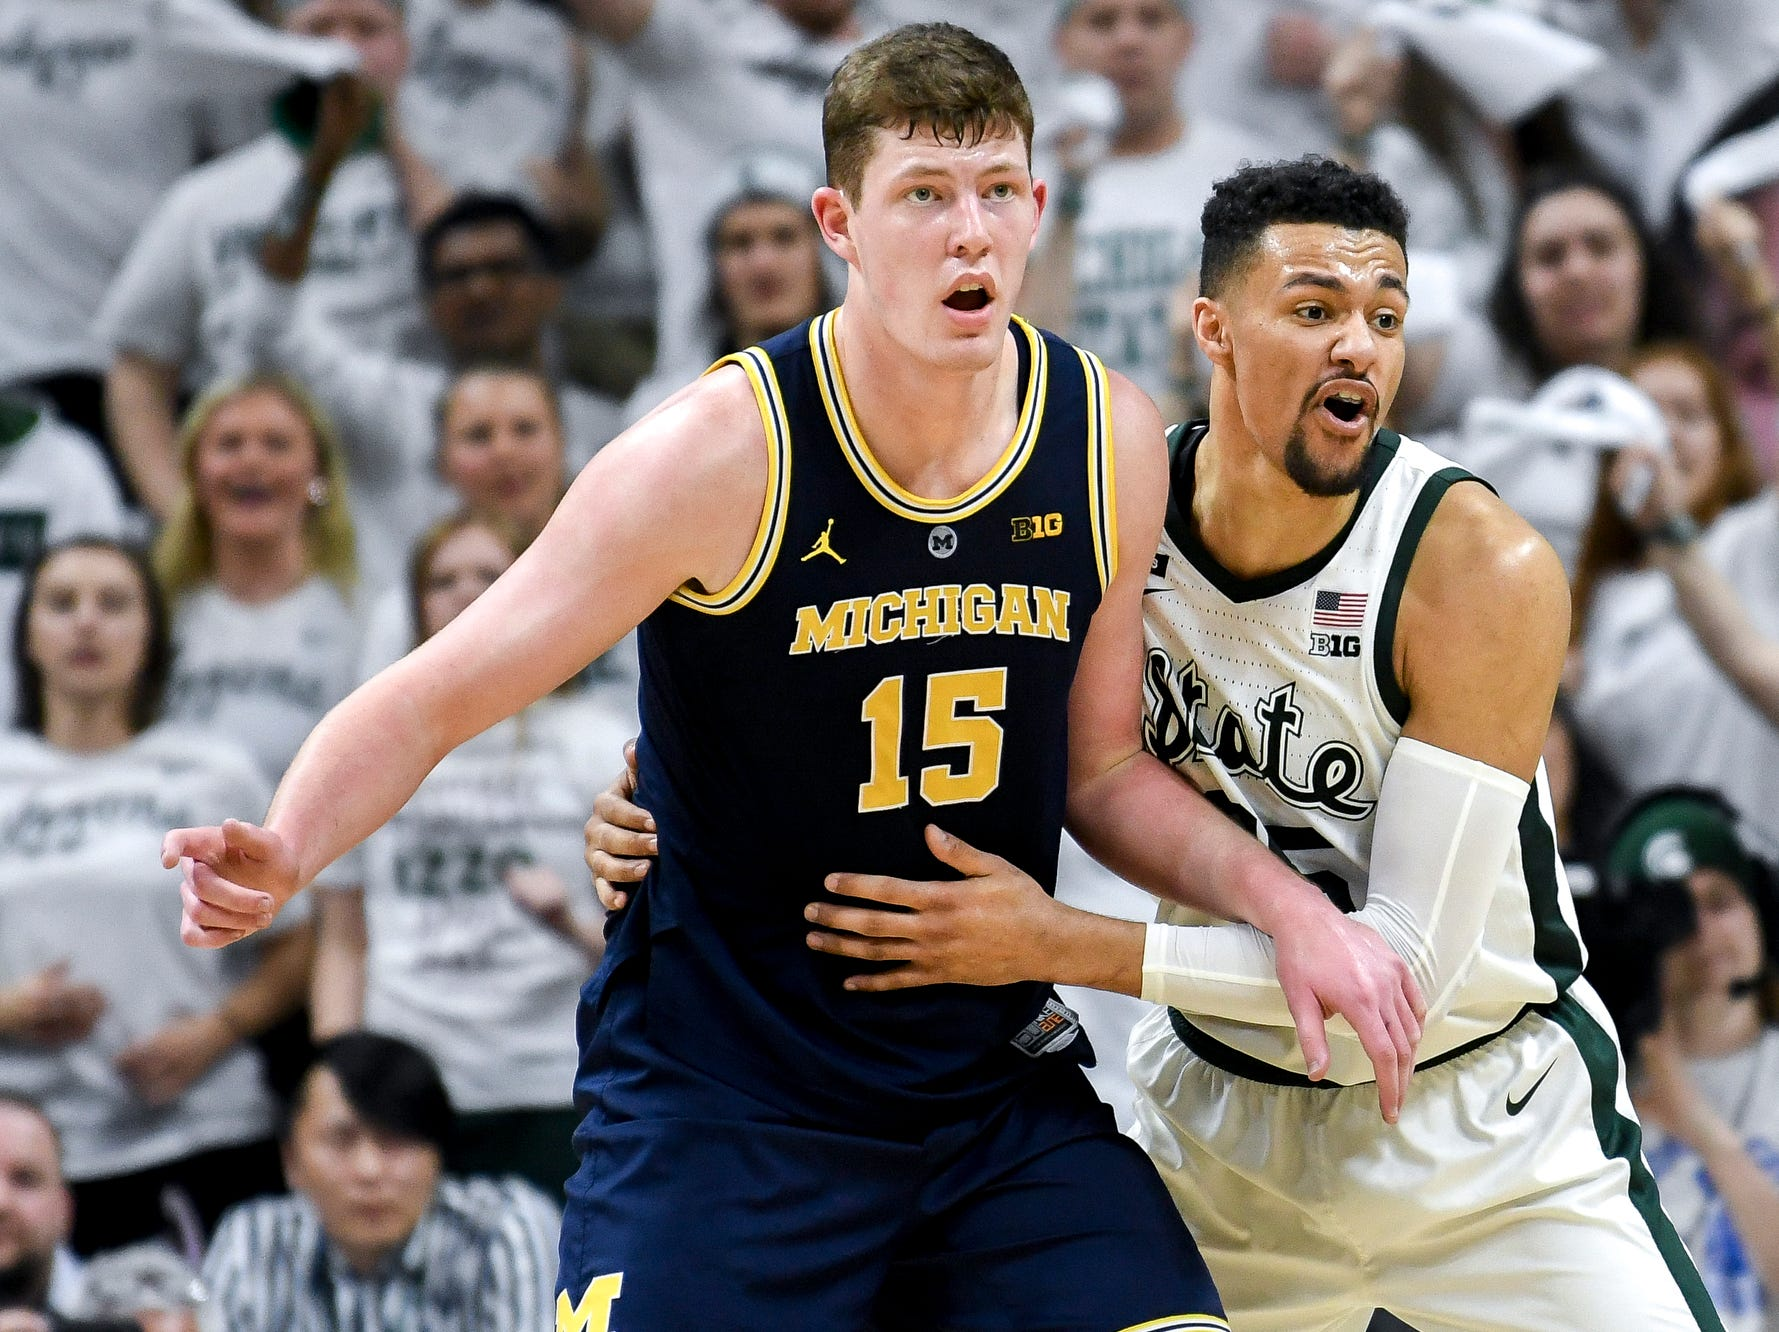 Michigan State's Kenny Goins, right, guards Michigan's Jon Teske during the second half on Saturday, March 9, 2019, at the Breslin Center in East Lansing.